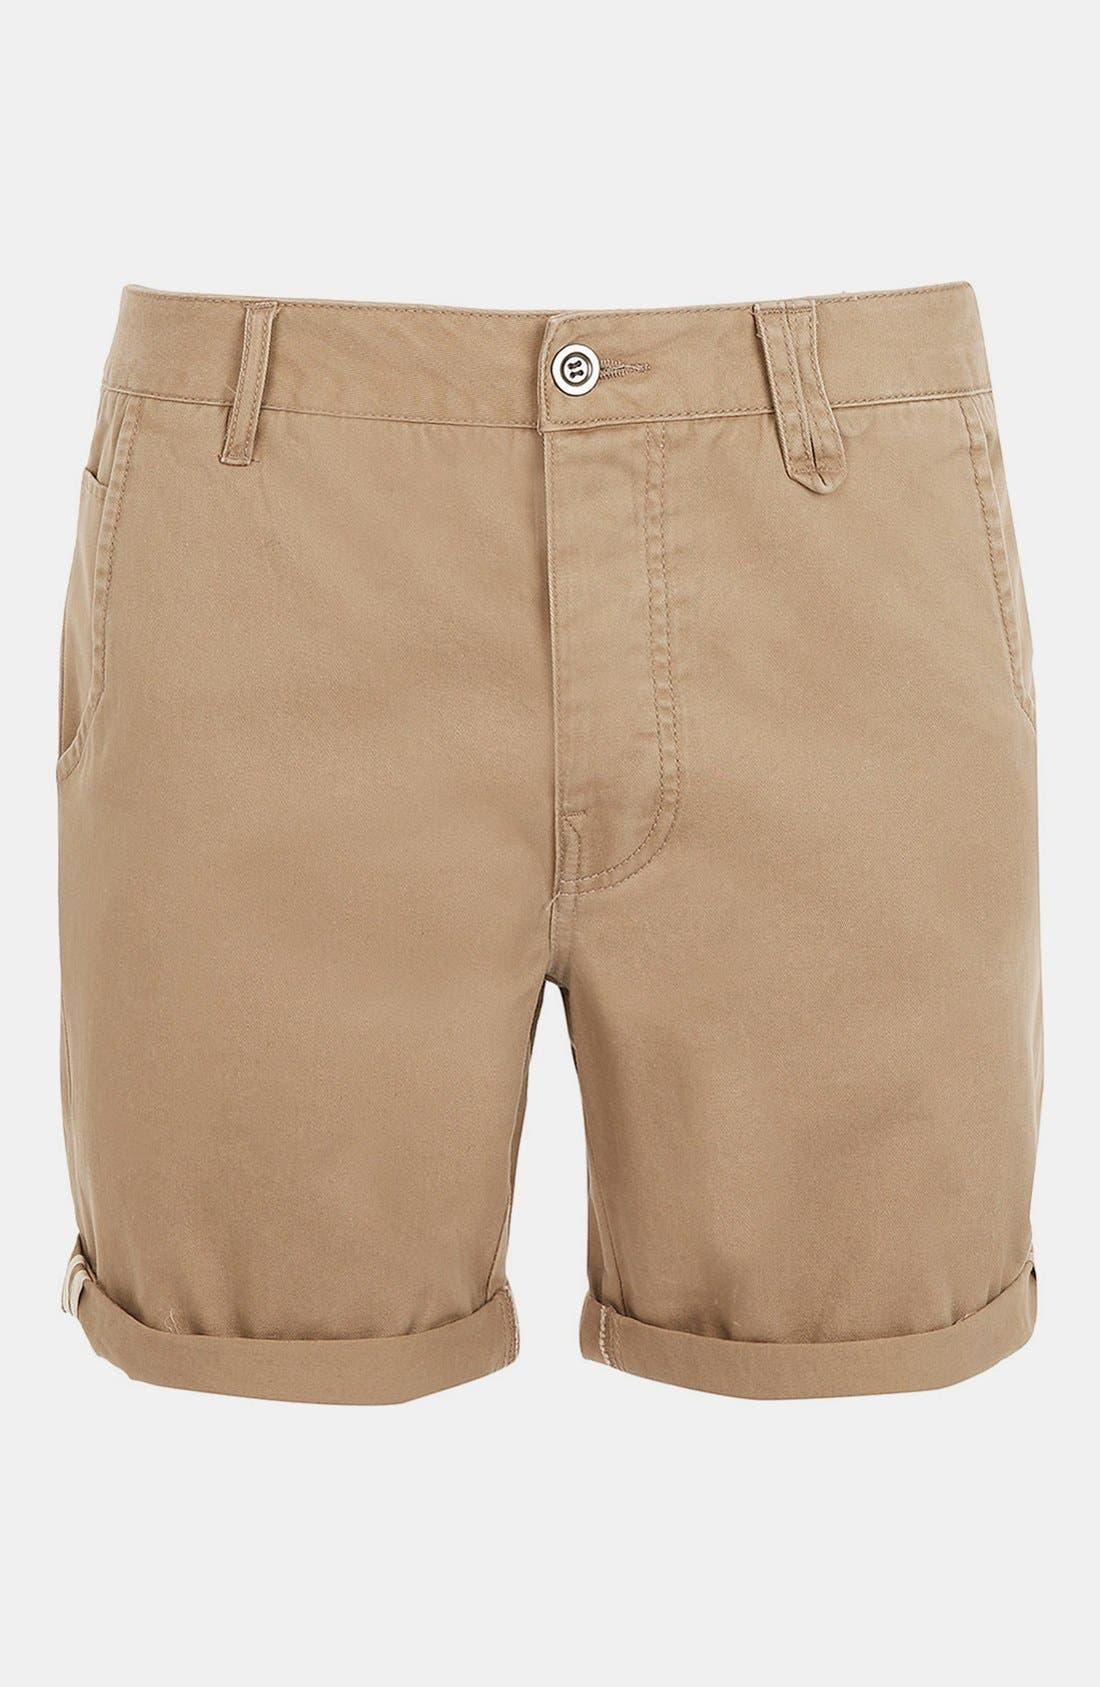 Alternate Image 1 Selected - Topman Chino Shorts